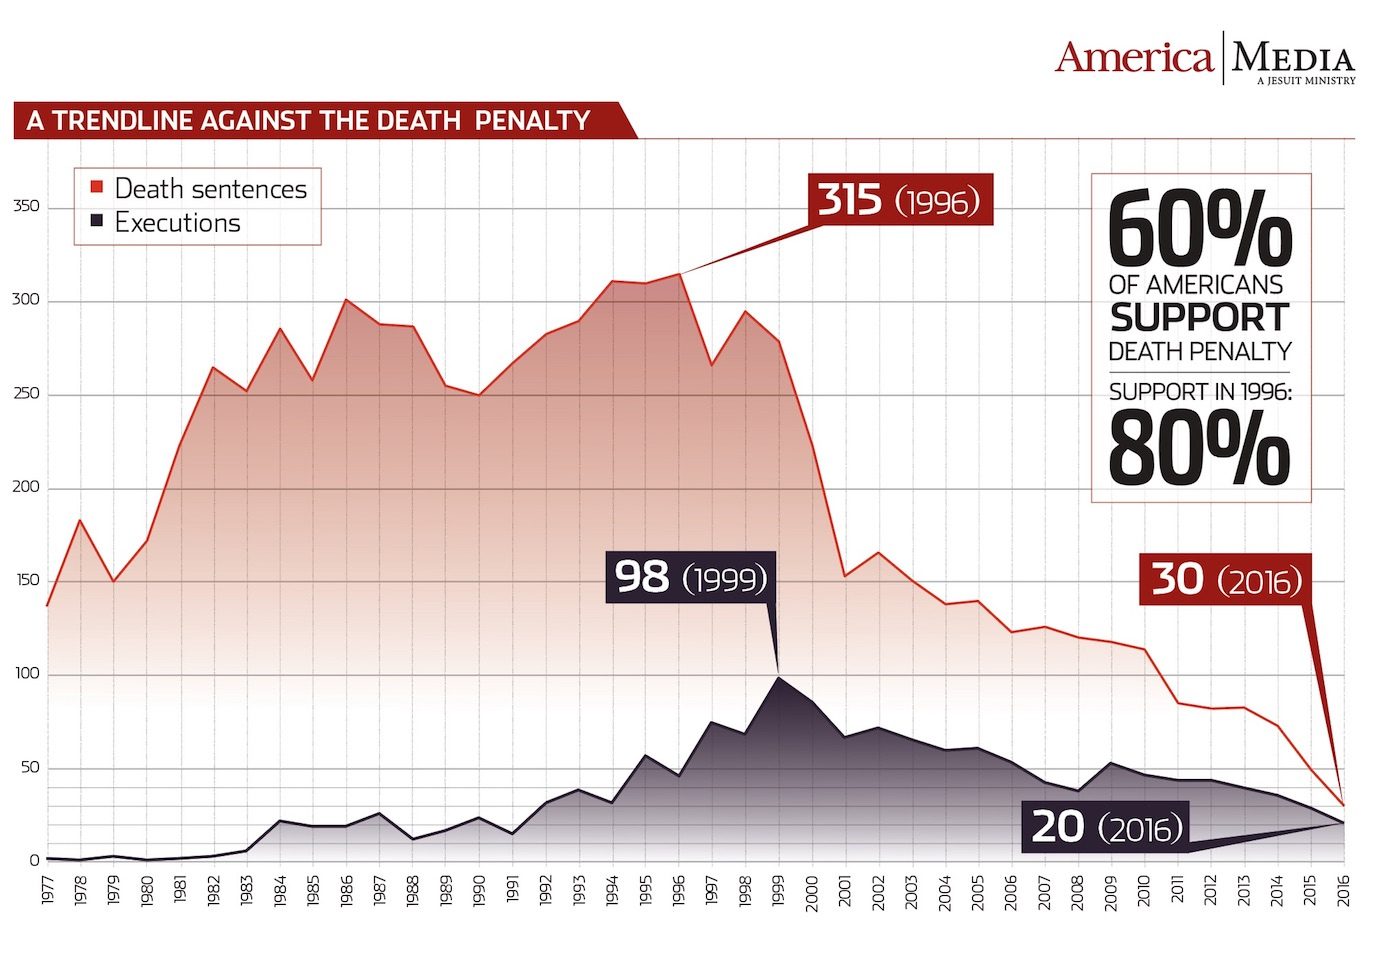 The death penalty is on the decline in the United States.